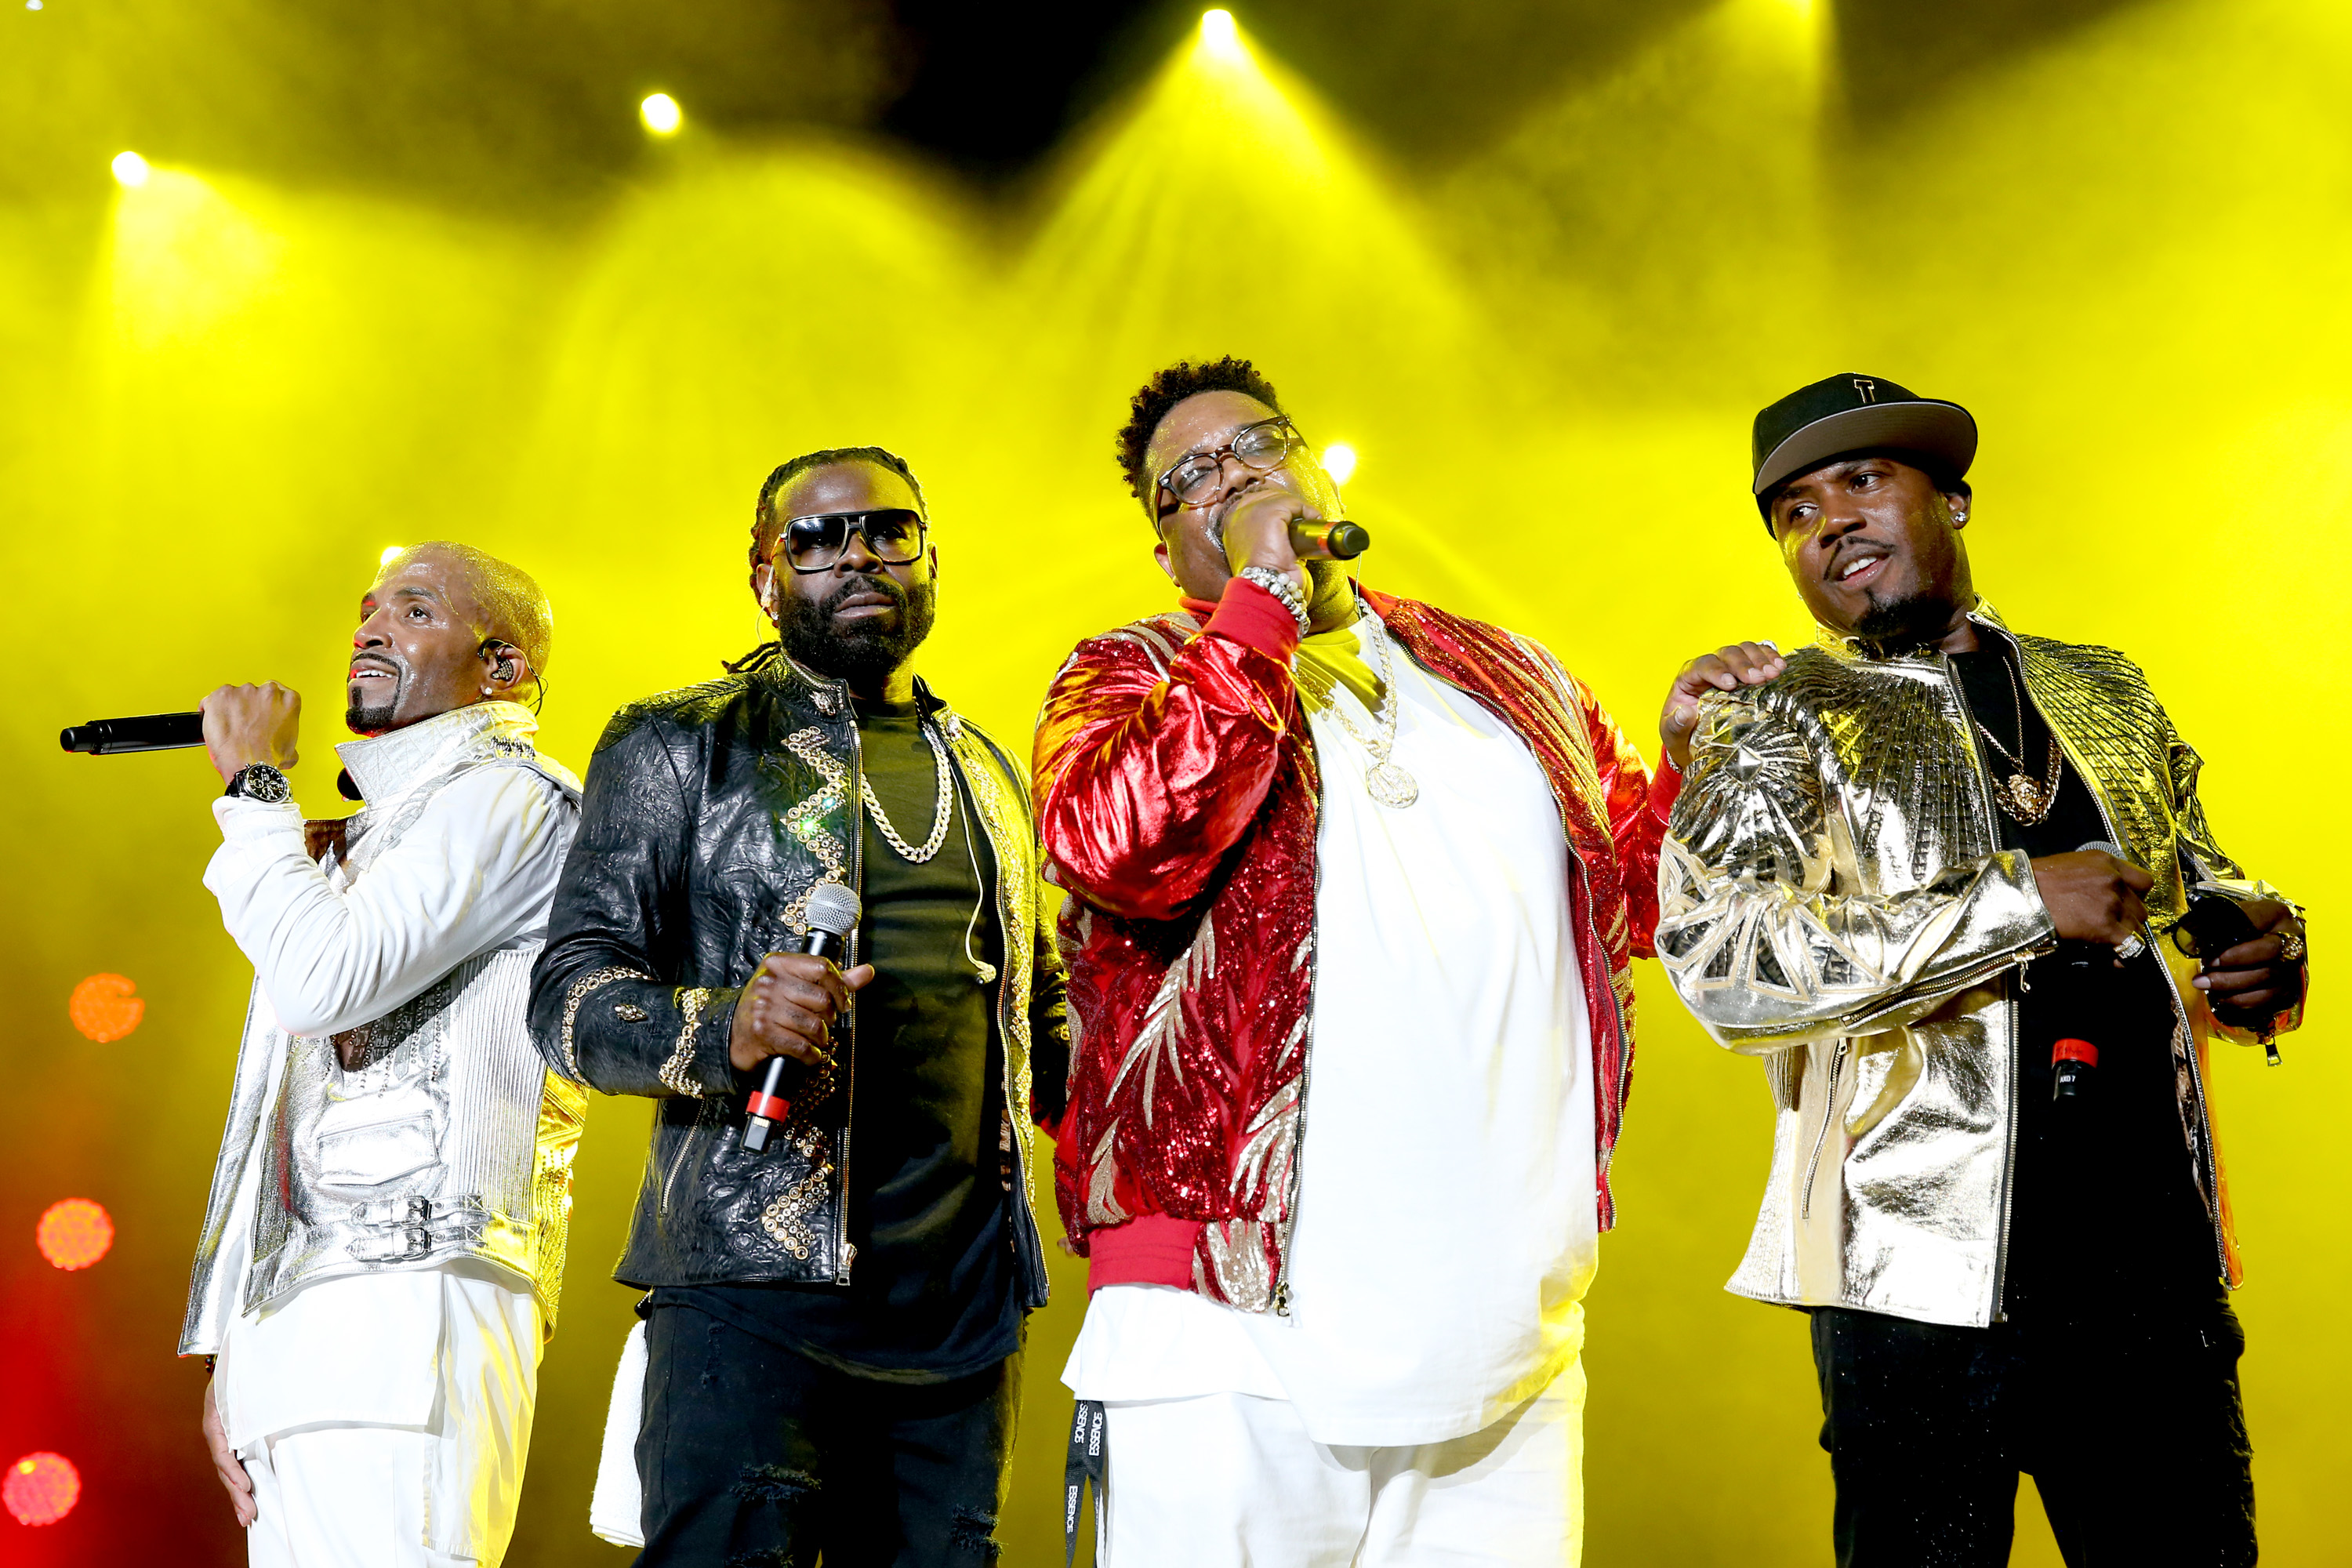 2018 Essence Festival Presented By Coca-Cola - Louisiana Superdome - Day 3